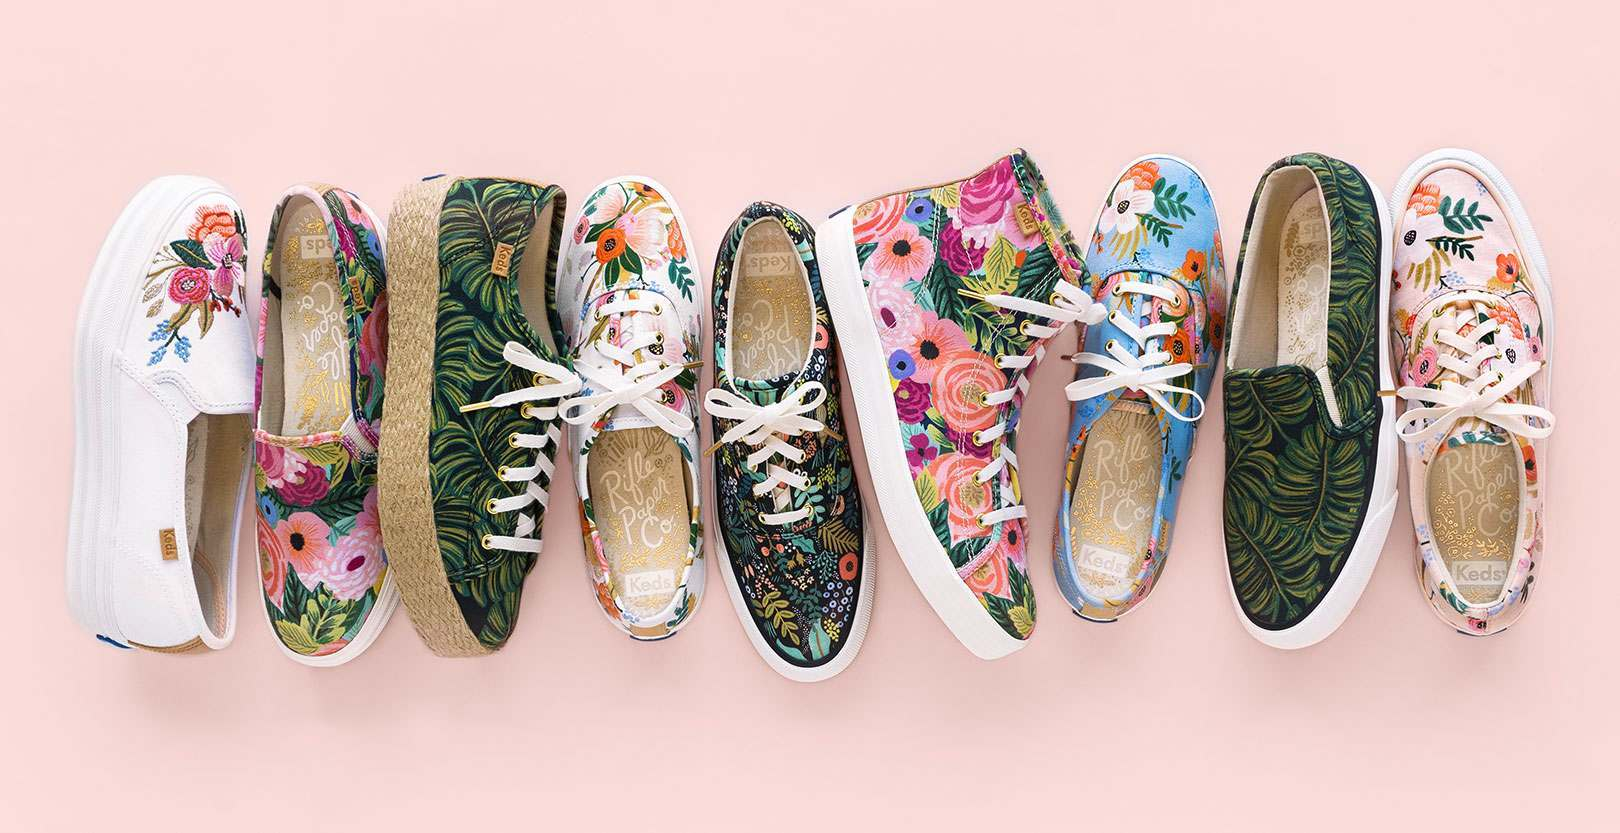 Rifle Paper Co x Keds Collection